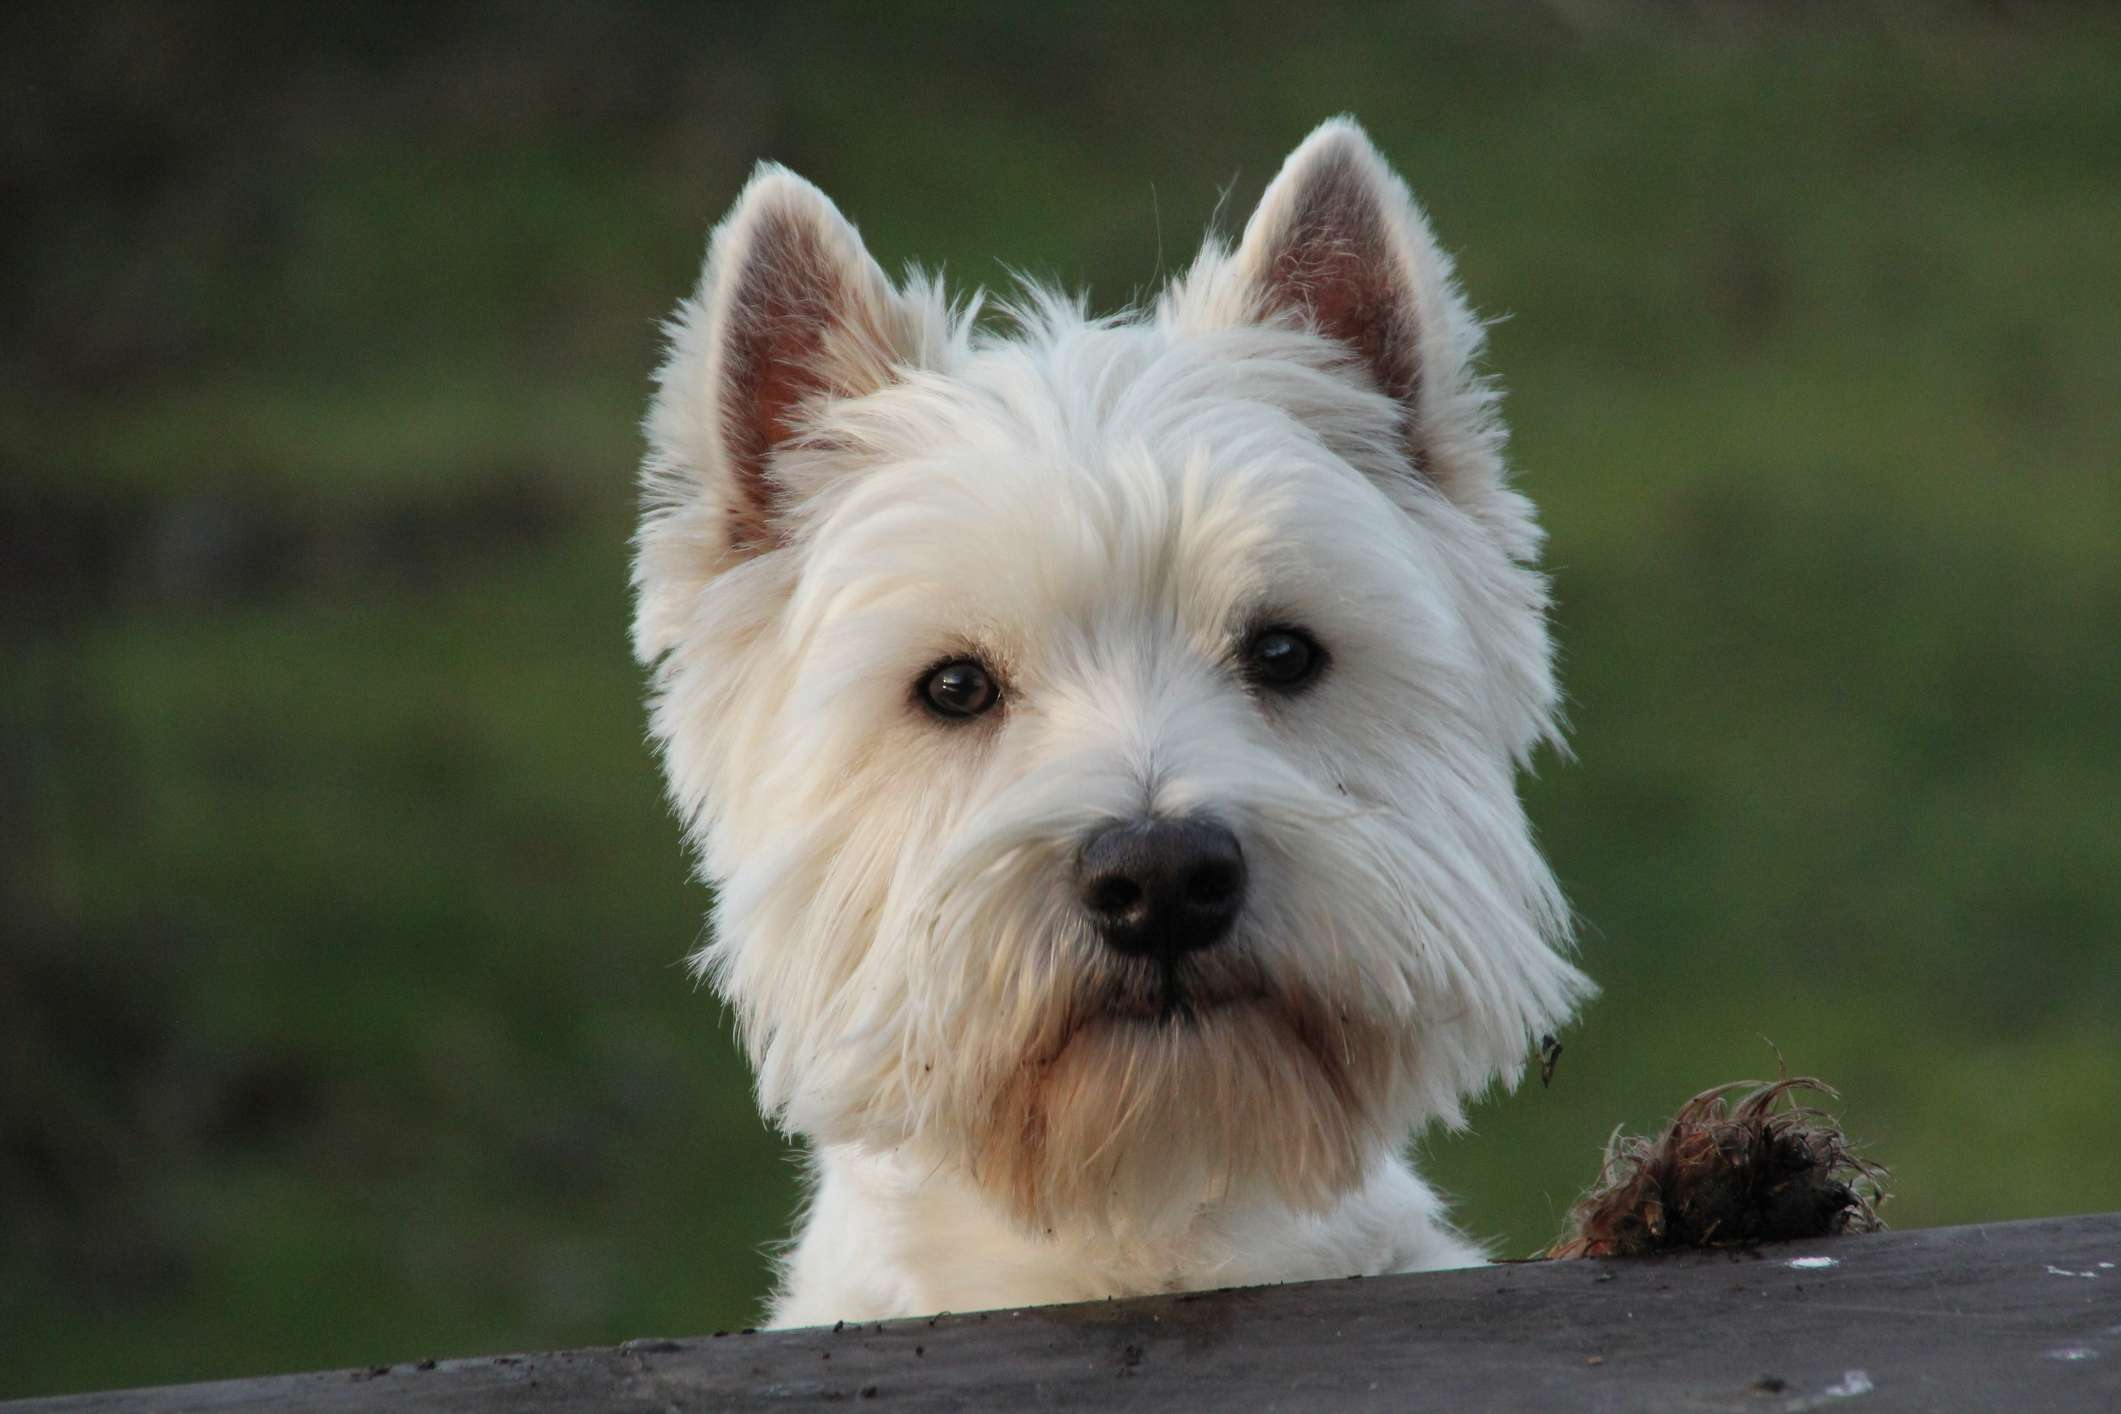 West Highland Terrier head shot with paw on fence and blurred green outdoor background